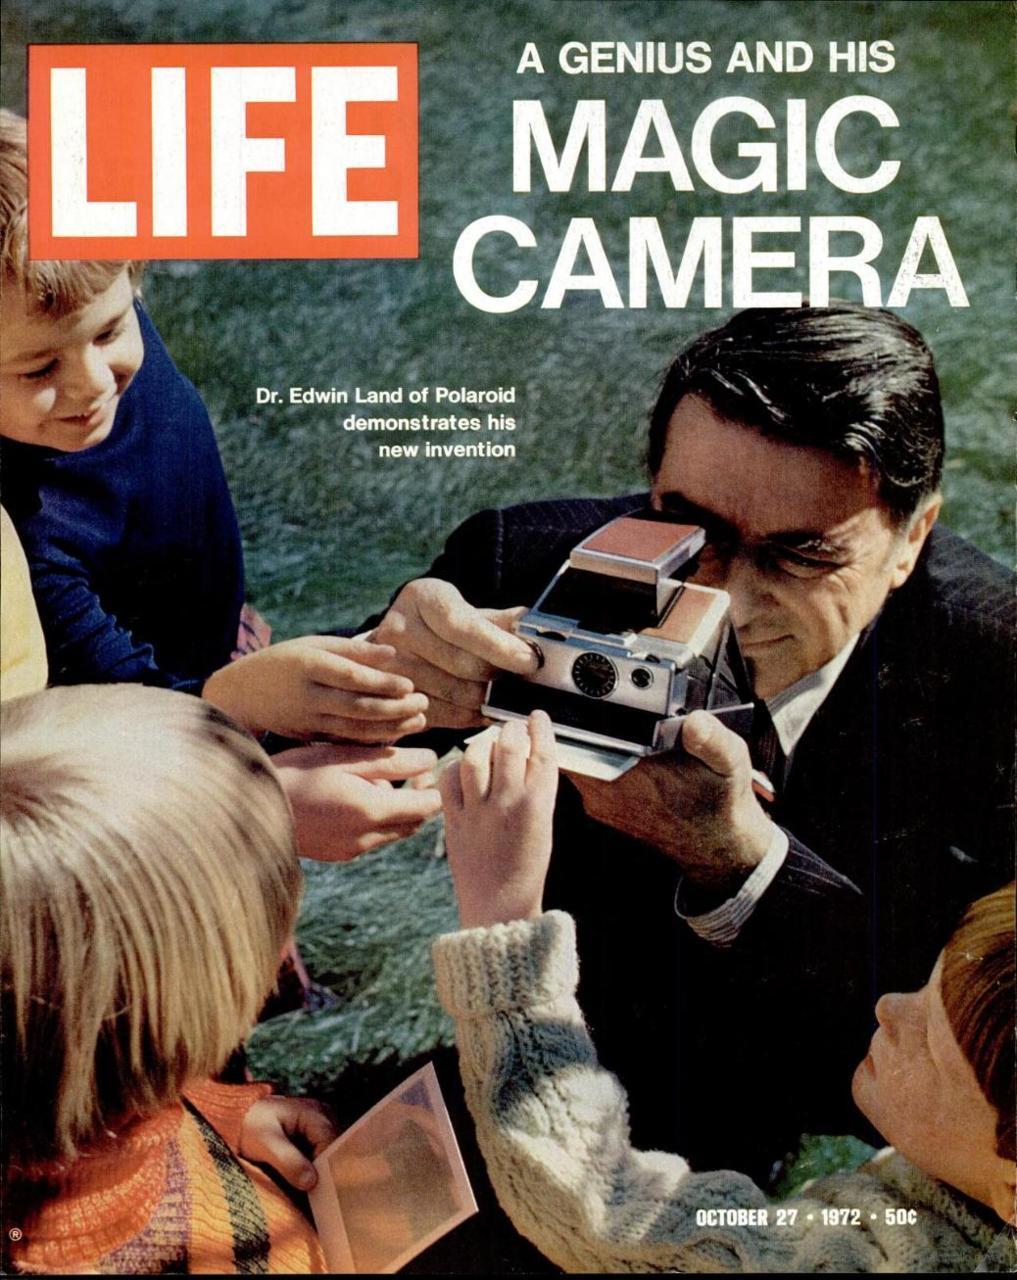 Edwin Land of Polaroid demonstrates his new invention. LIFE, October 27, 1972. (via)